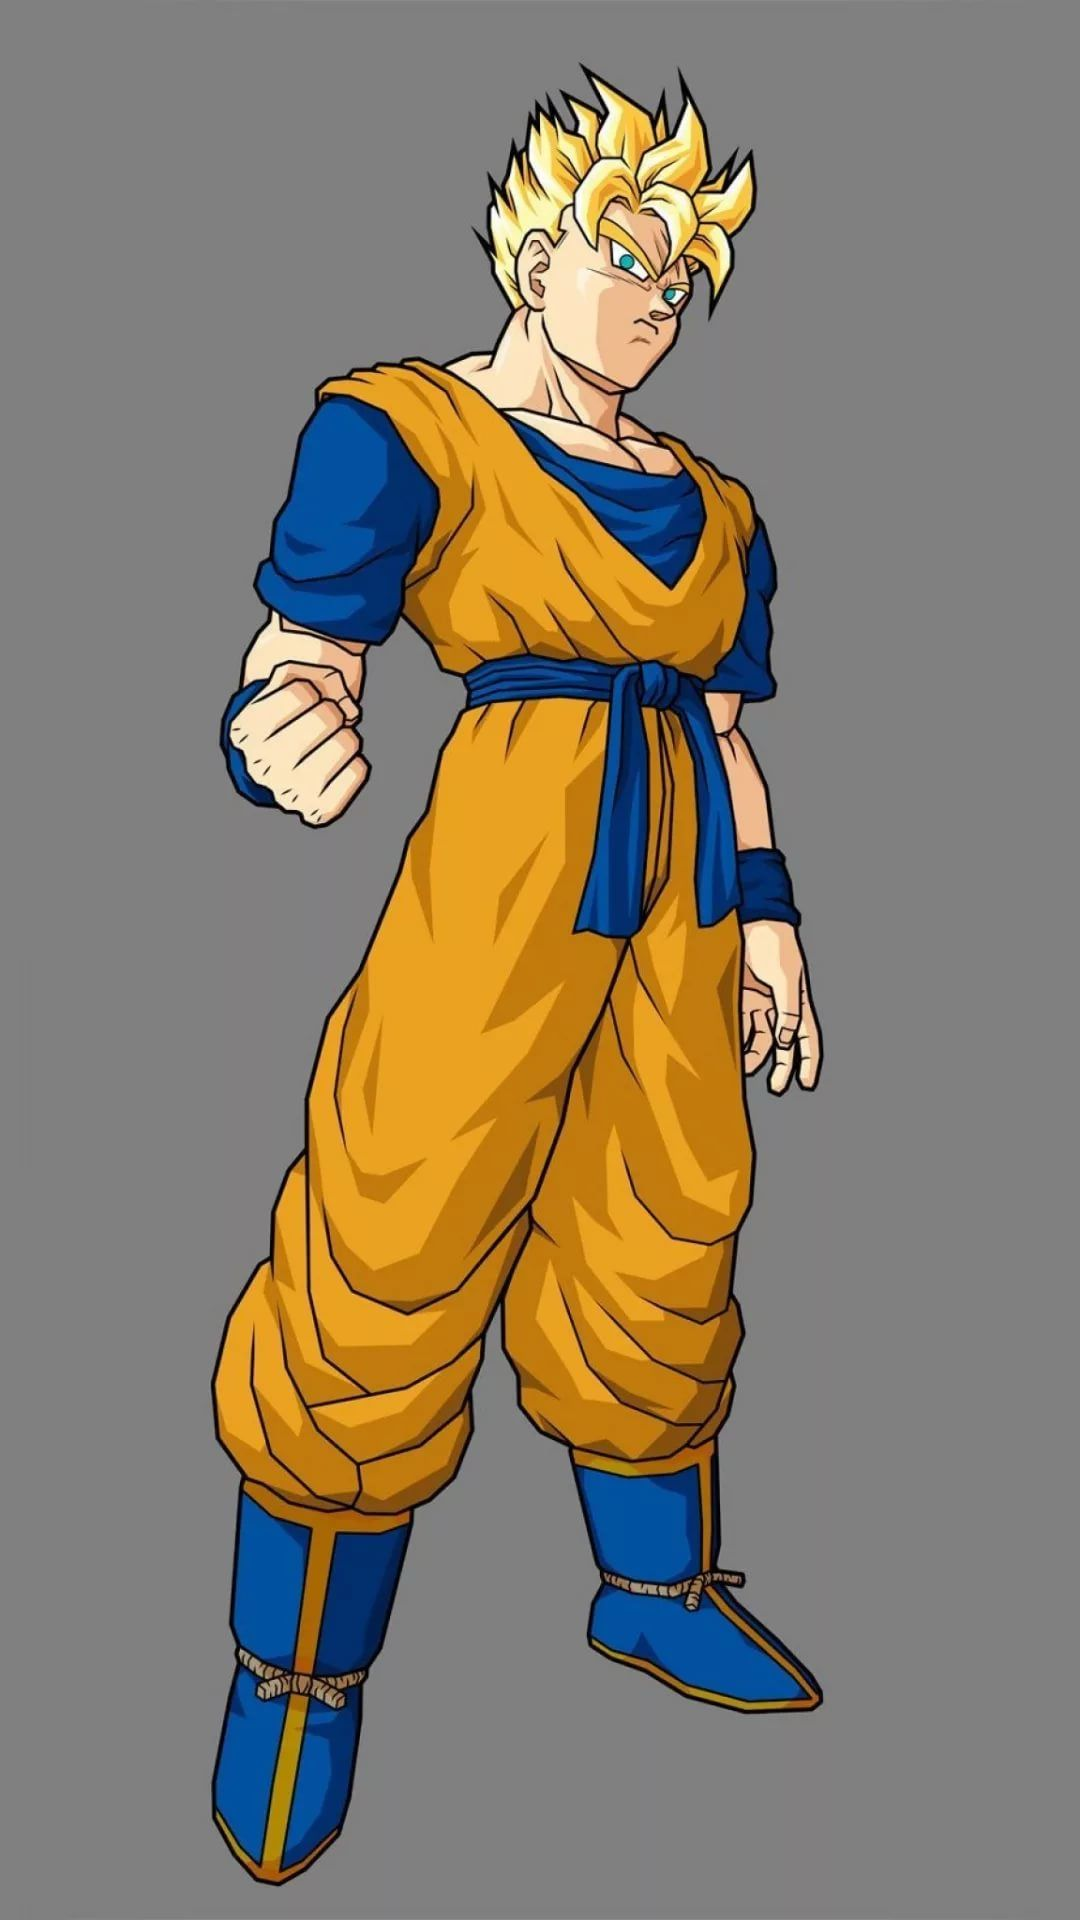 Gohan iPhone home screen wallpaper